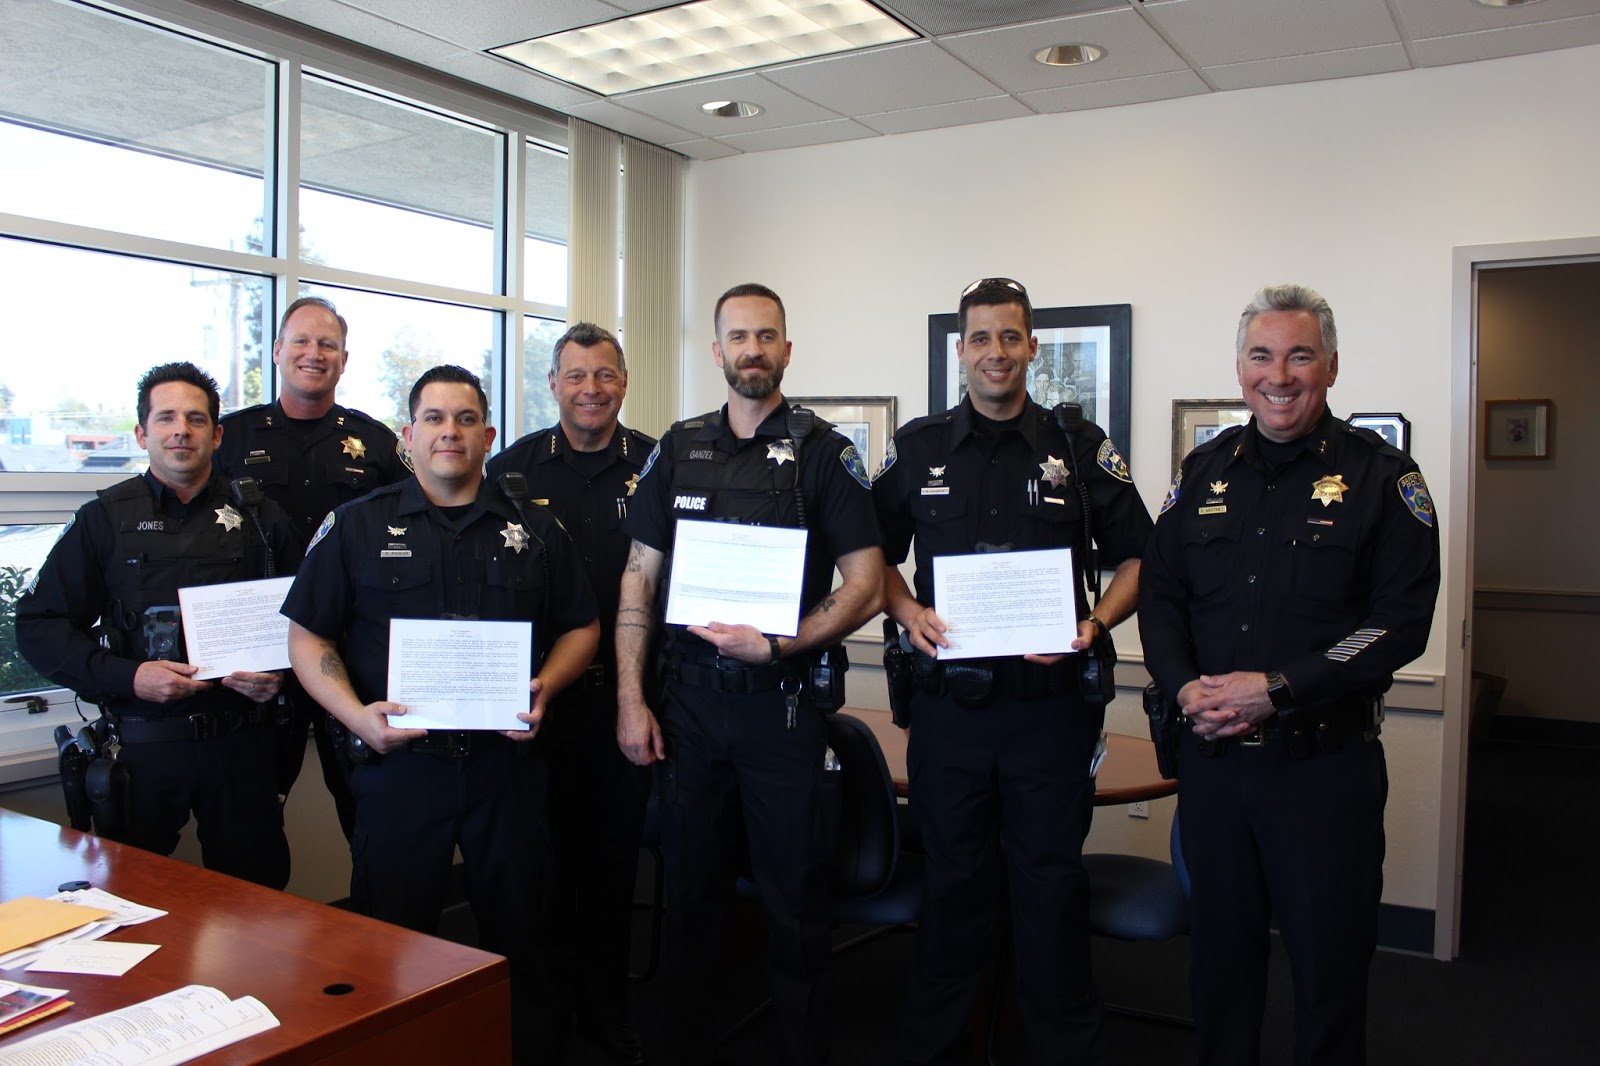 Santa Cruz Police: Chief's Commendation Awarded To Sgt  Carter Jones